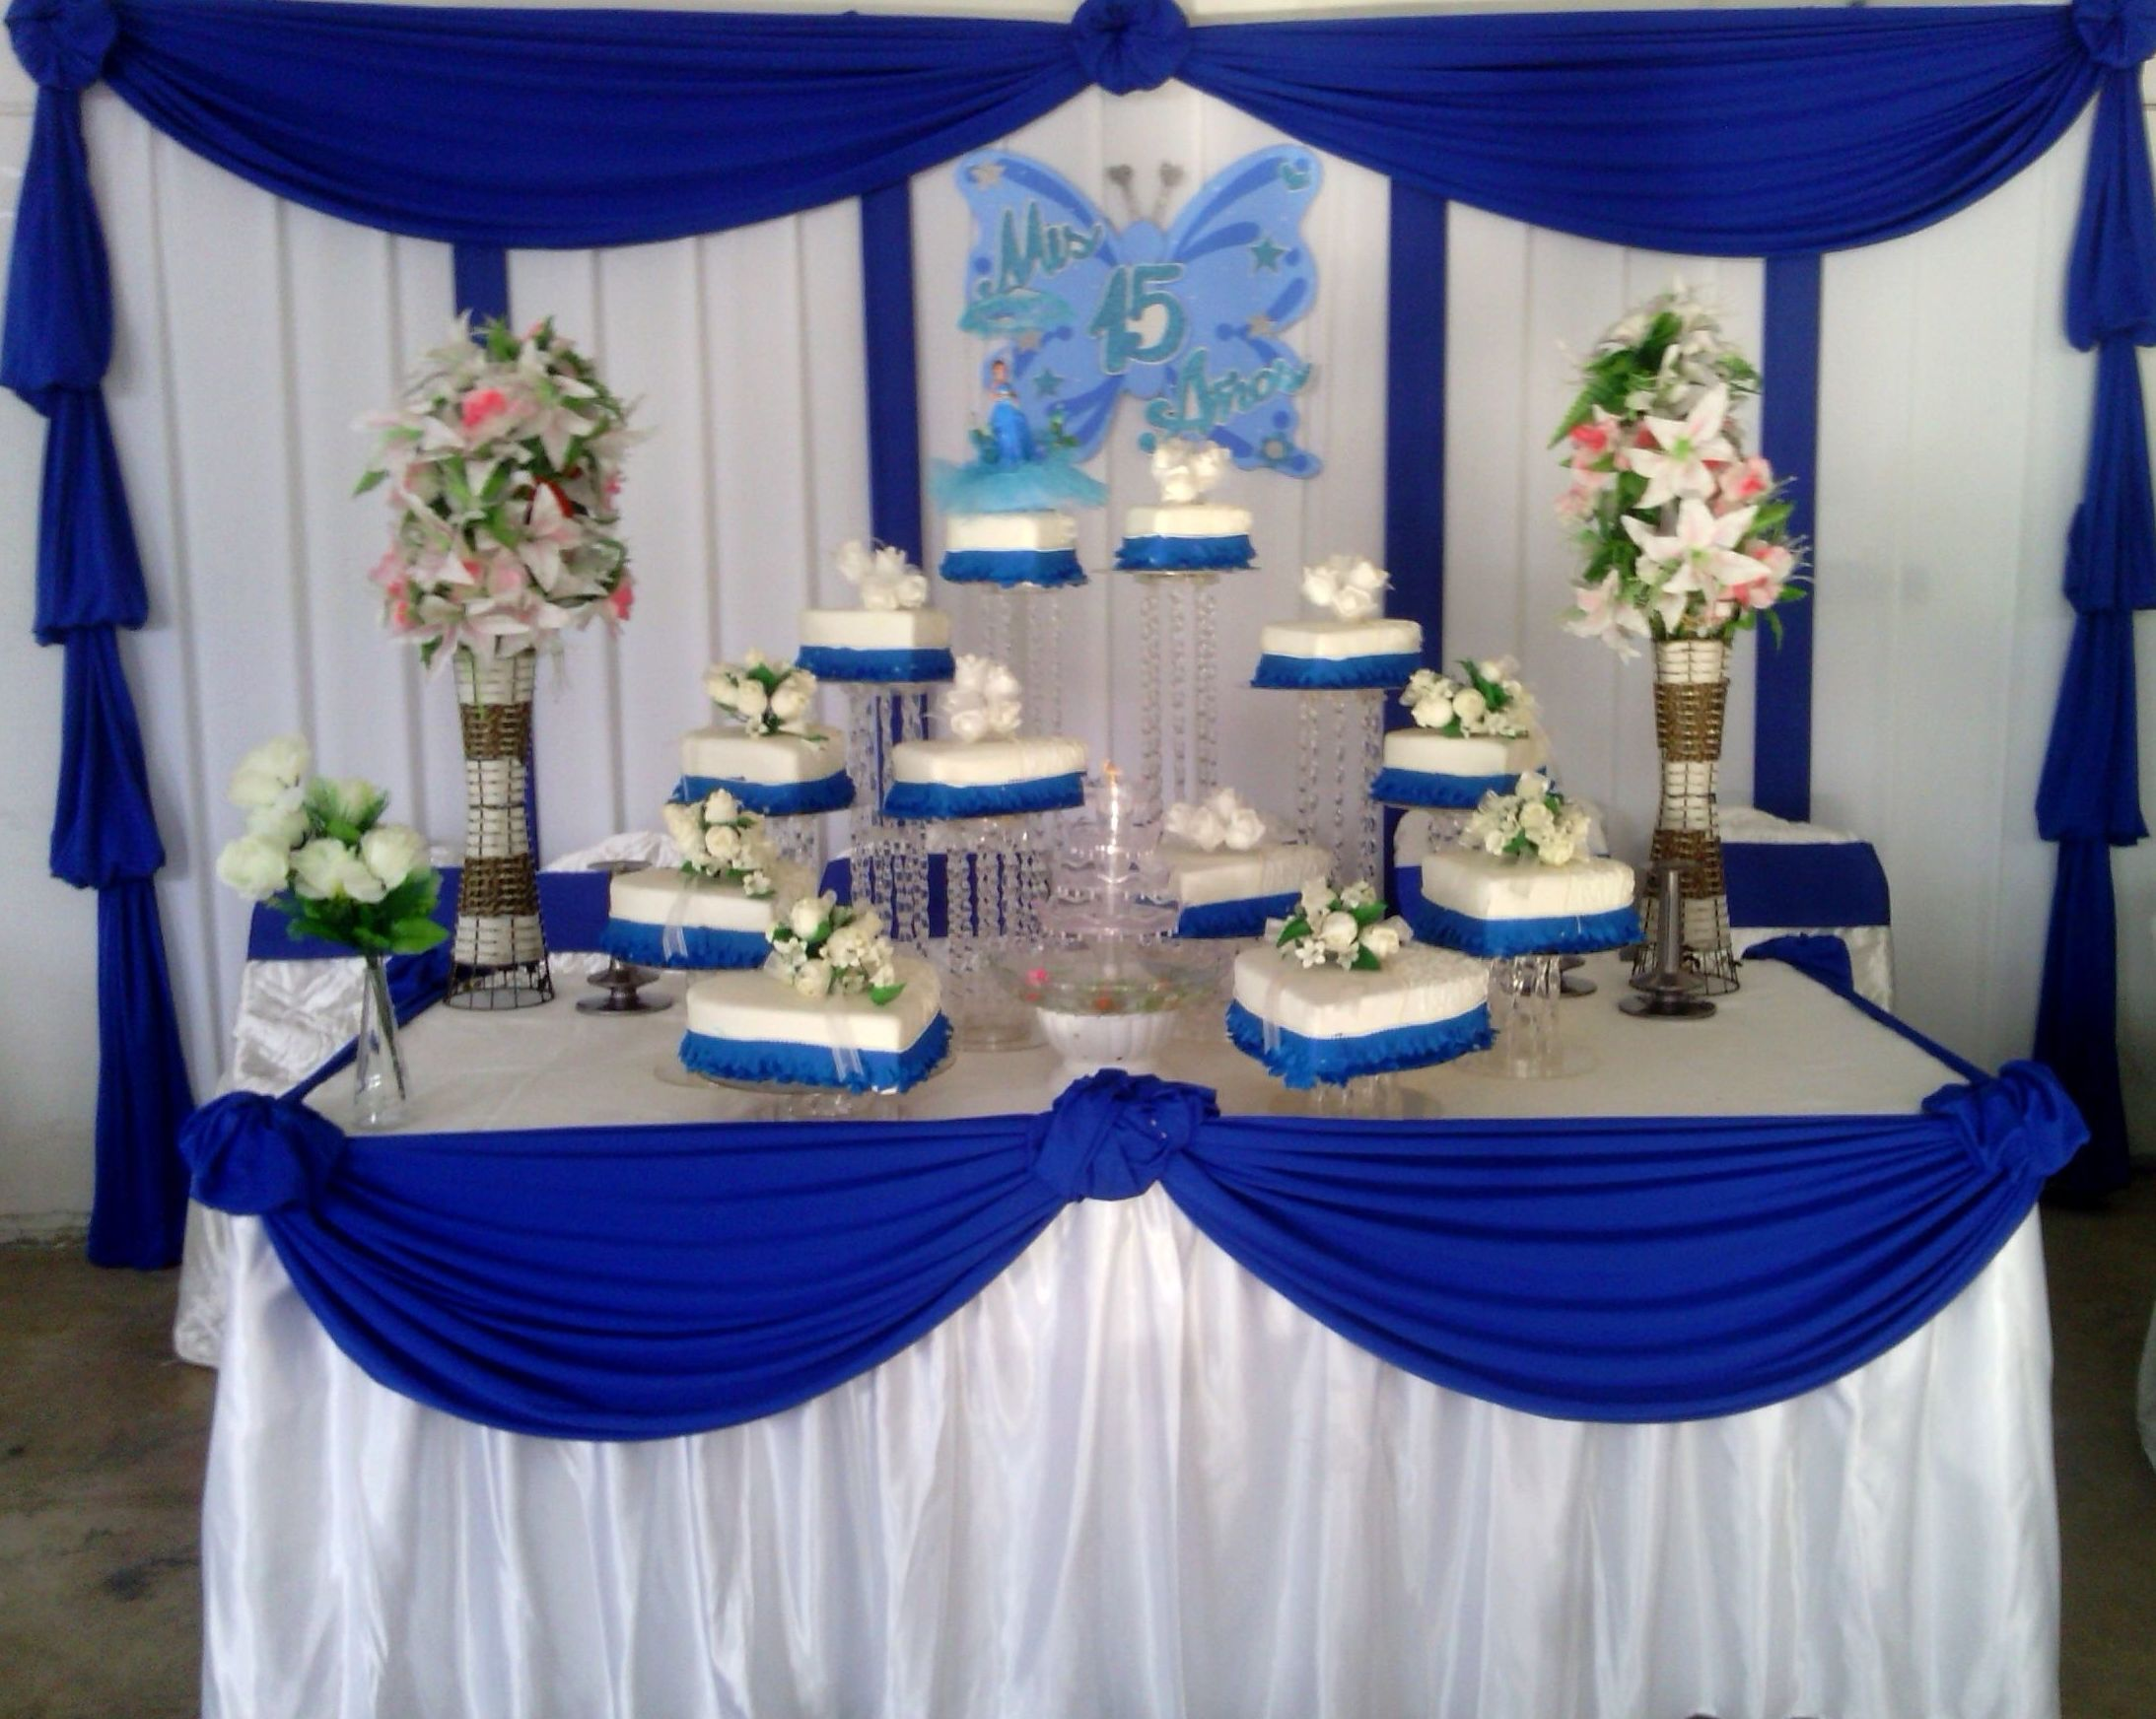 Decoraciones en color azul especial para quince a os for Decoracion de salones colores